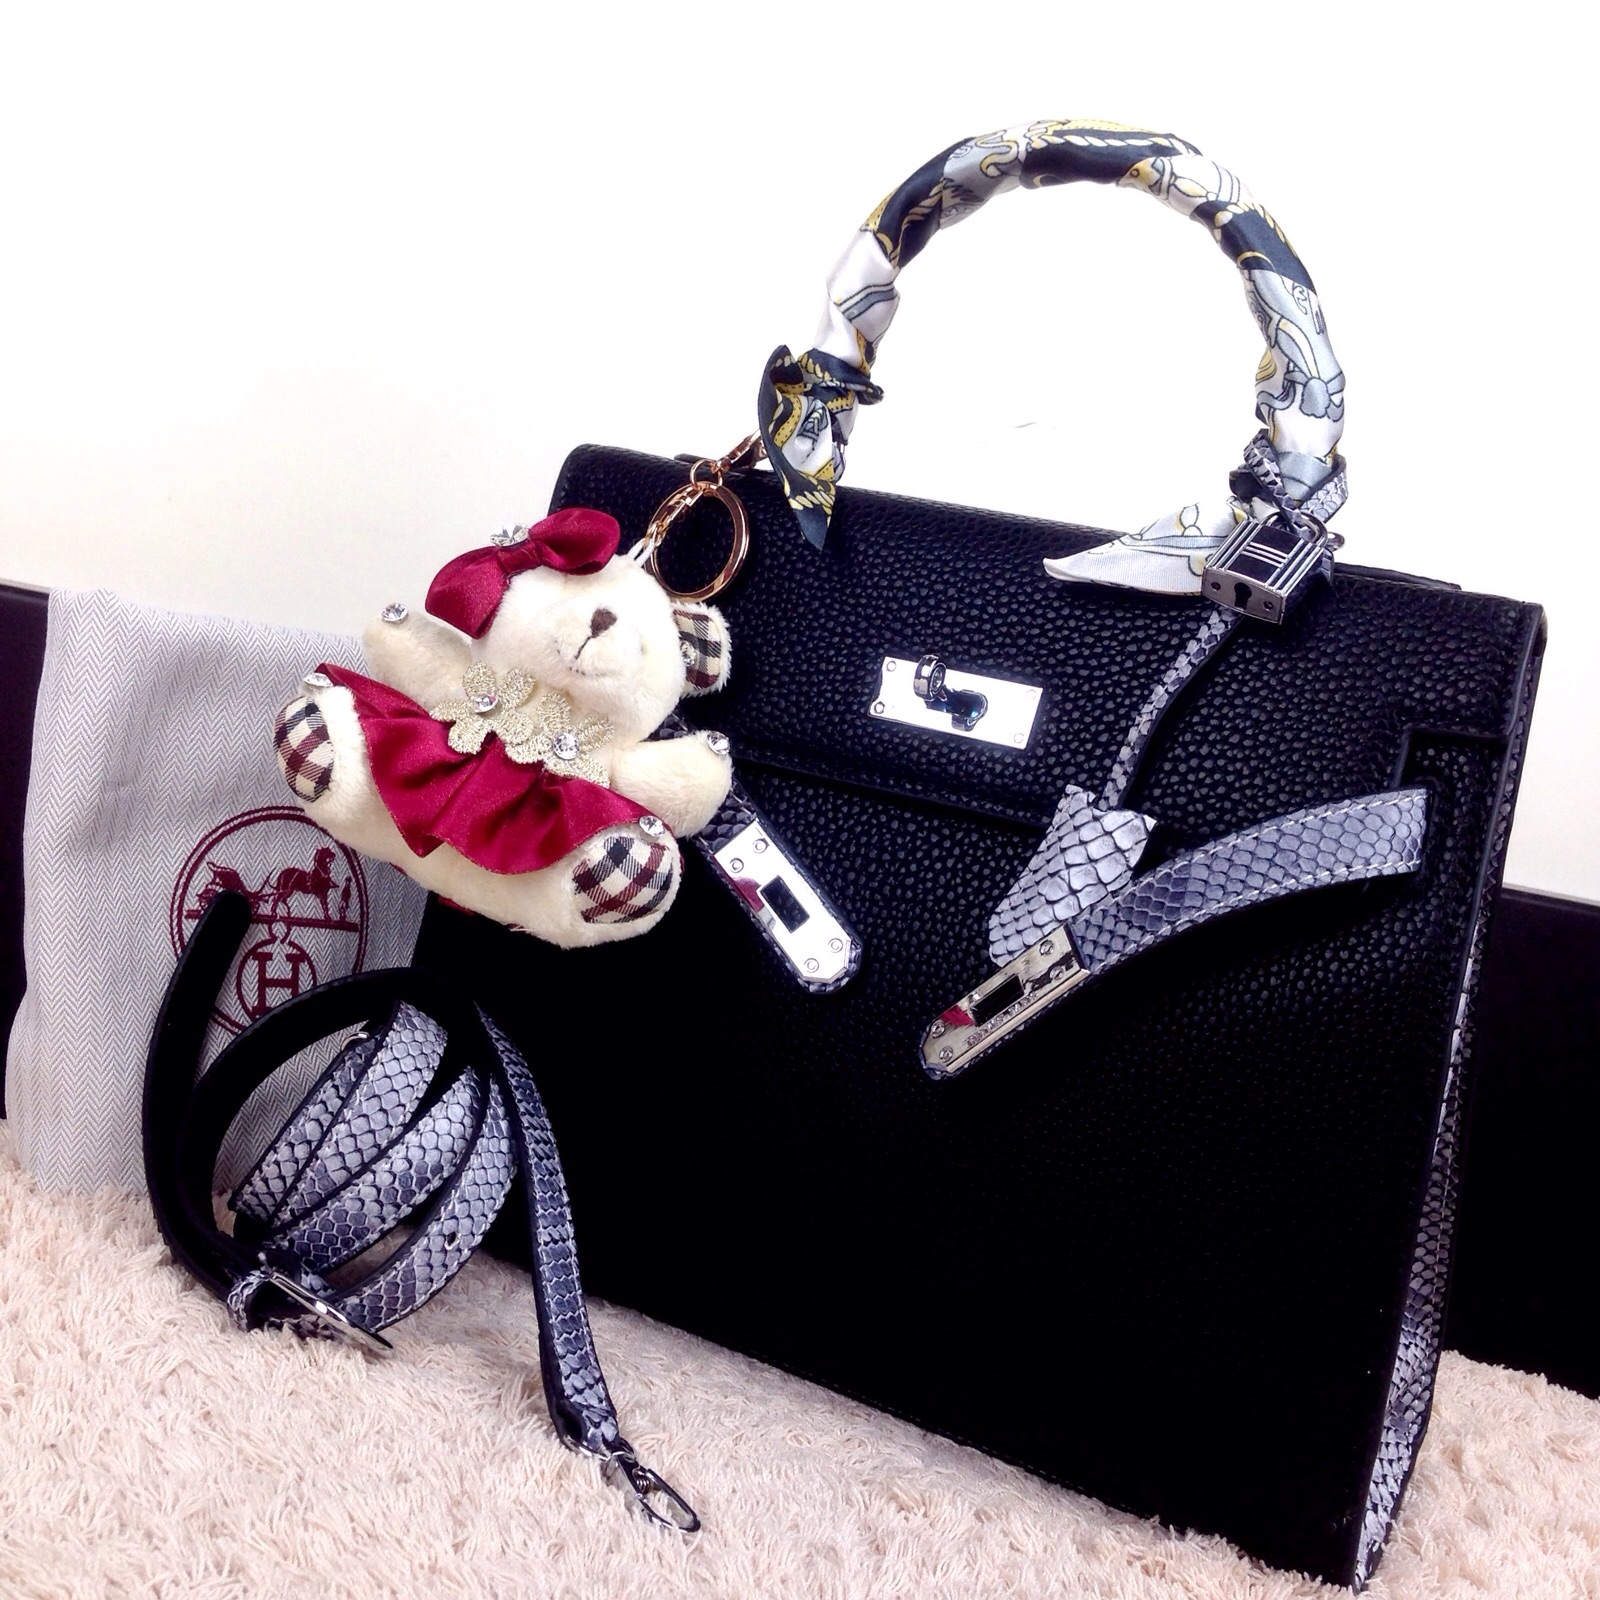 ... new style ready stock new arrival hermes kelly togo combination lizard  shw k28x22x10cm harga 460rb 2273 97fd8045ce